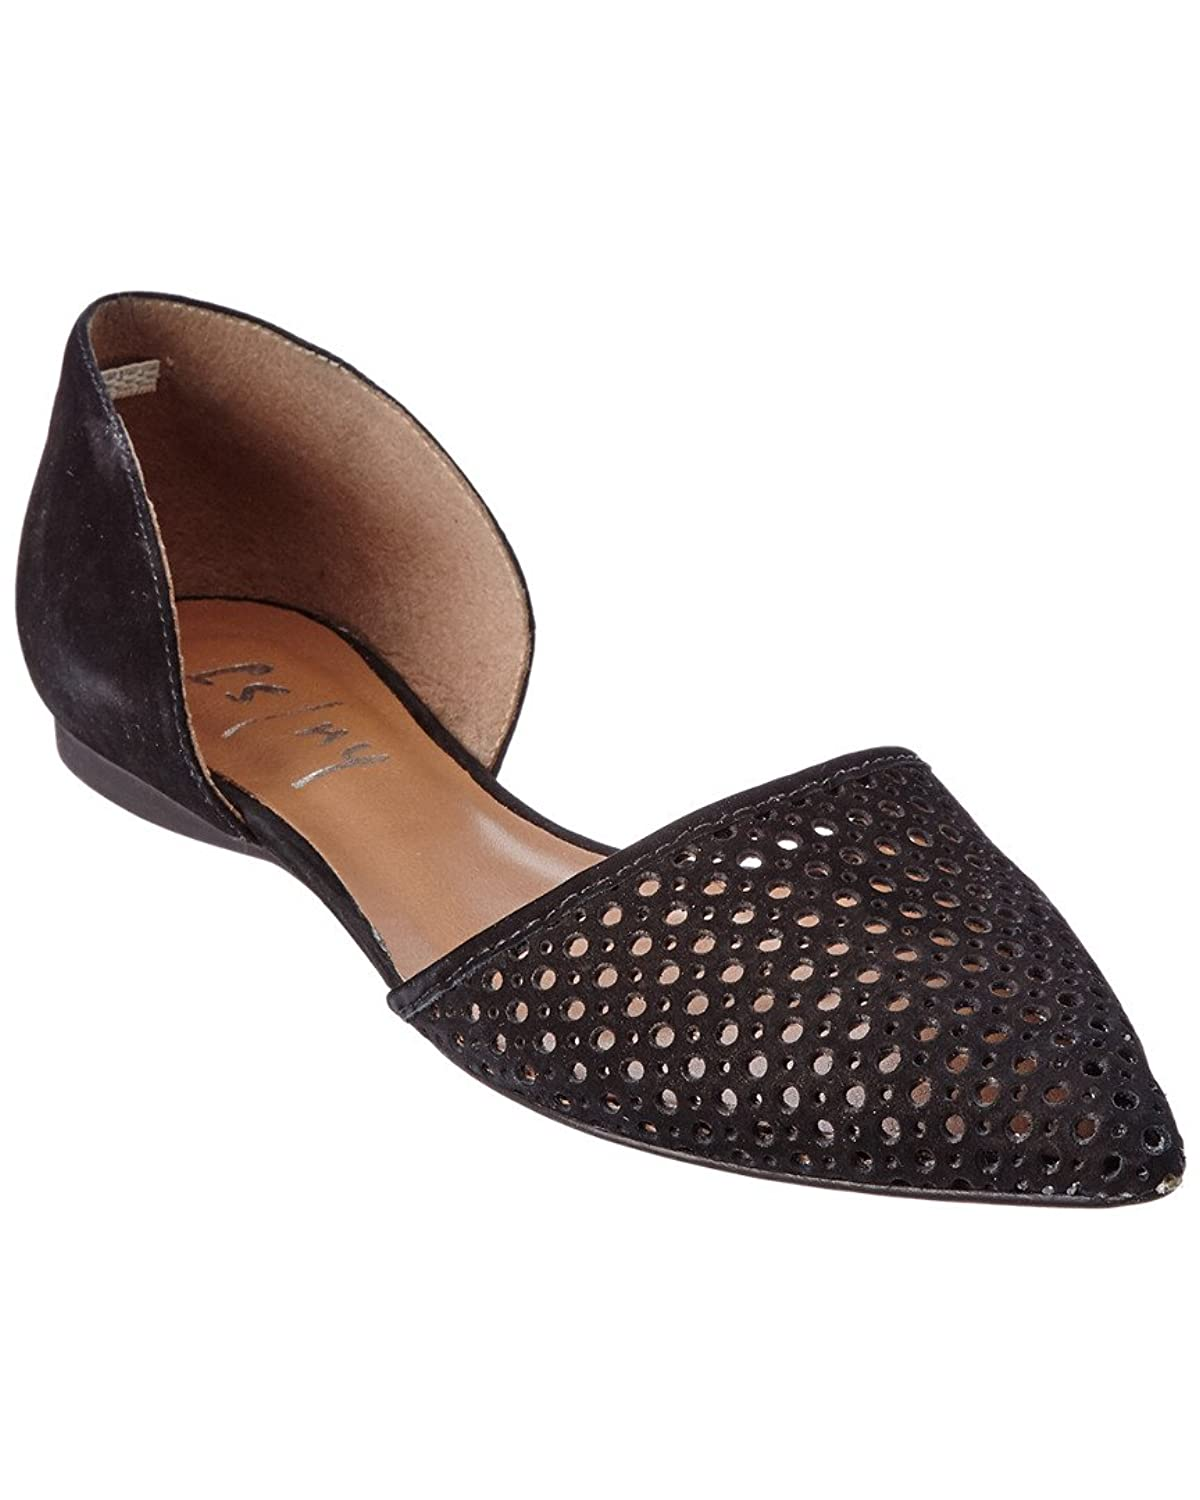 French Sole Womens Quotient